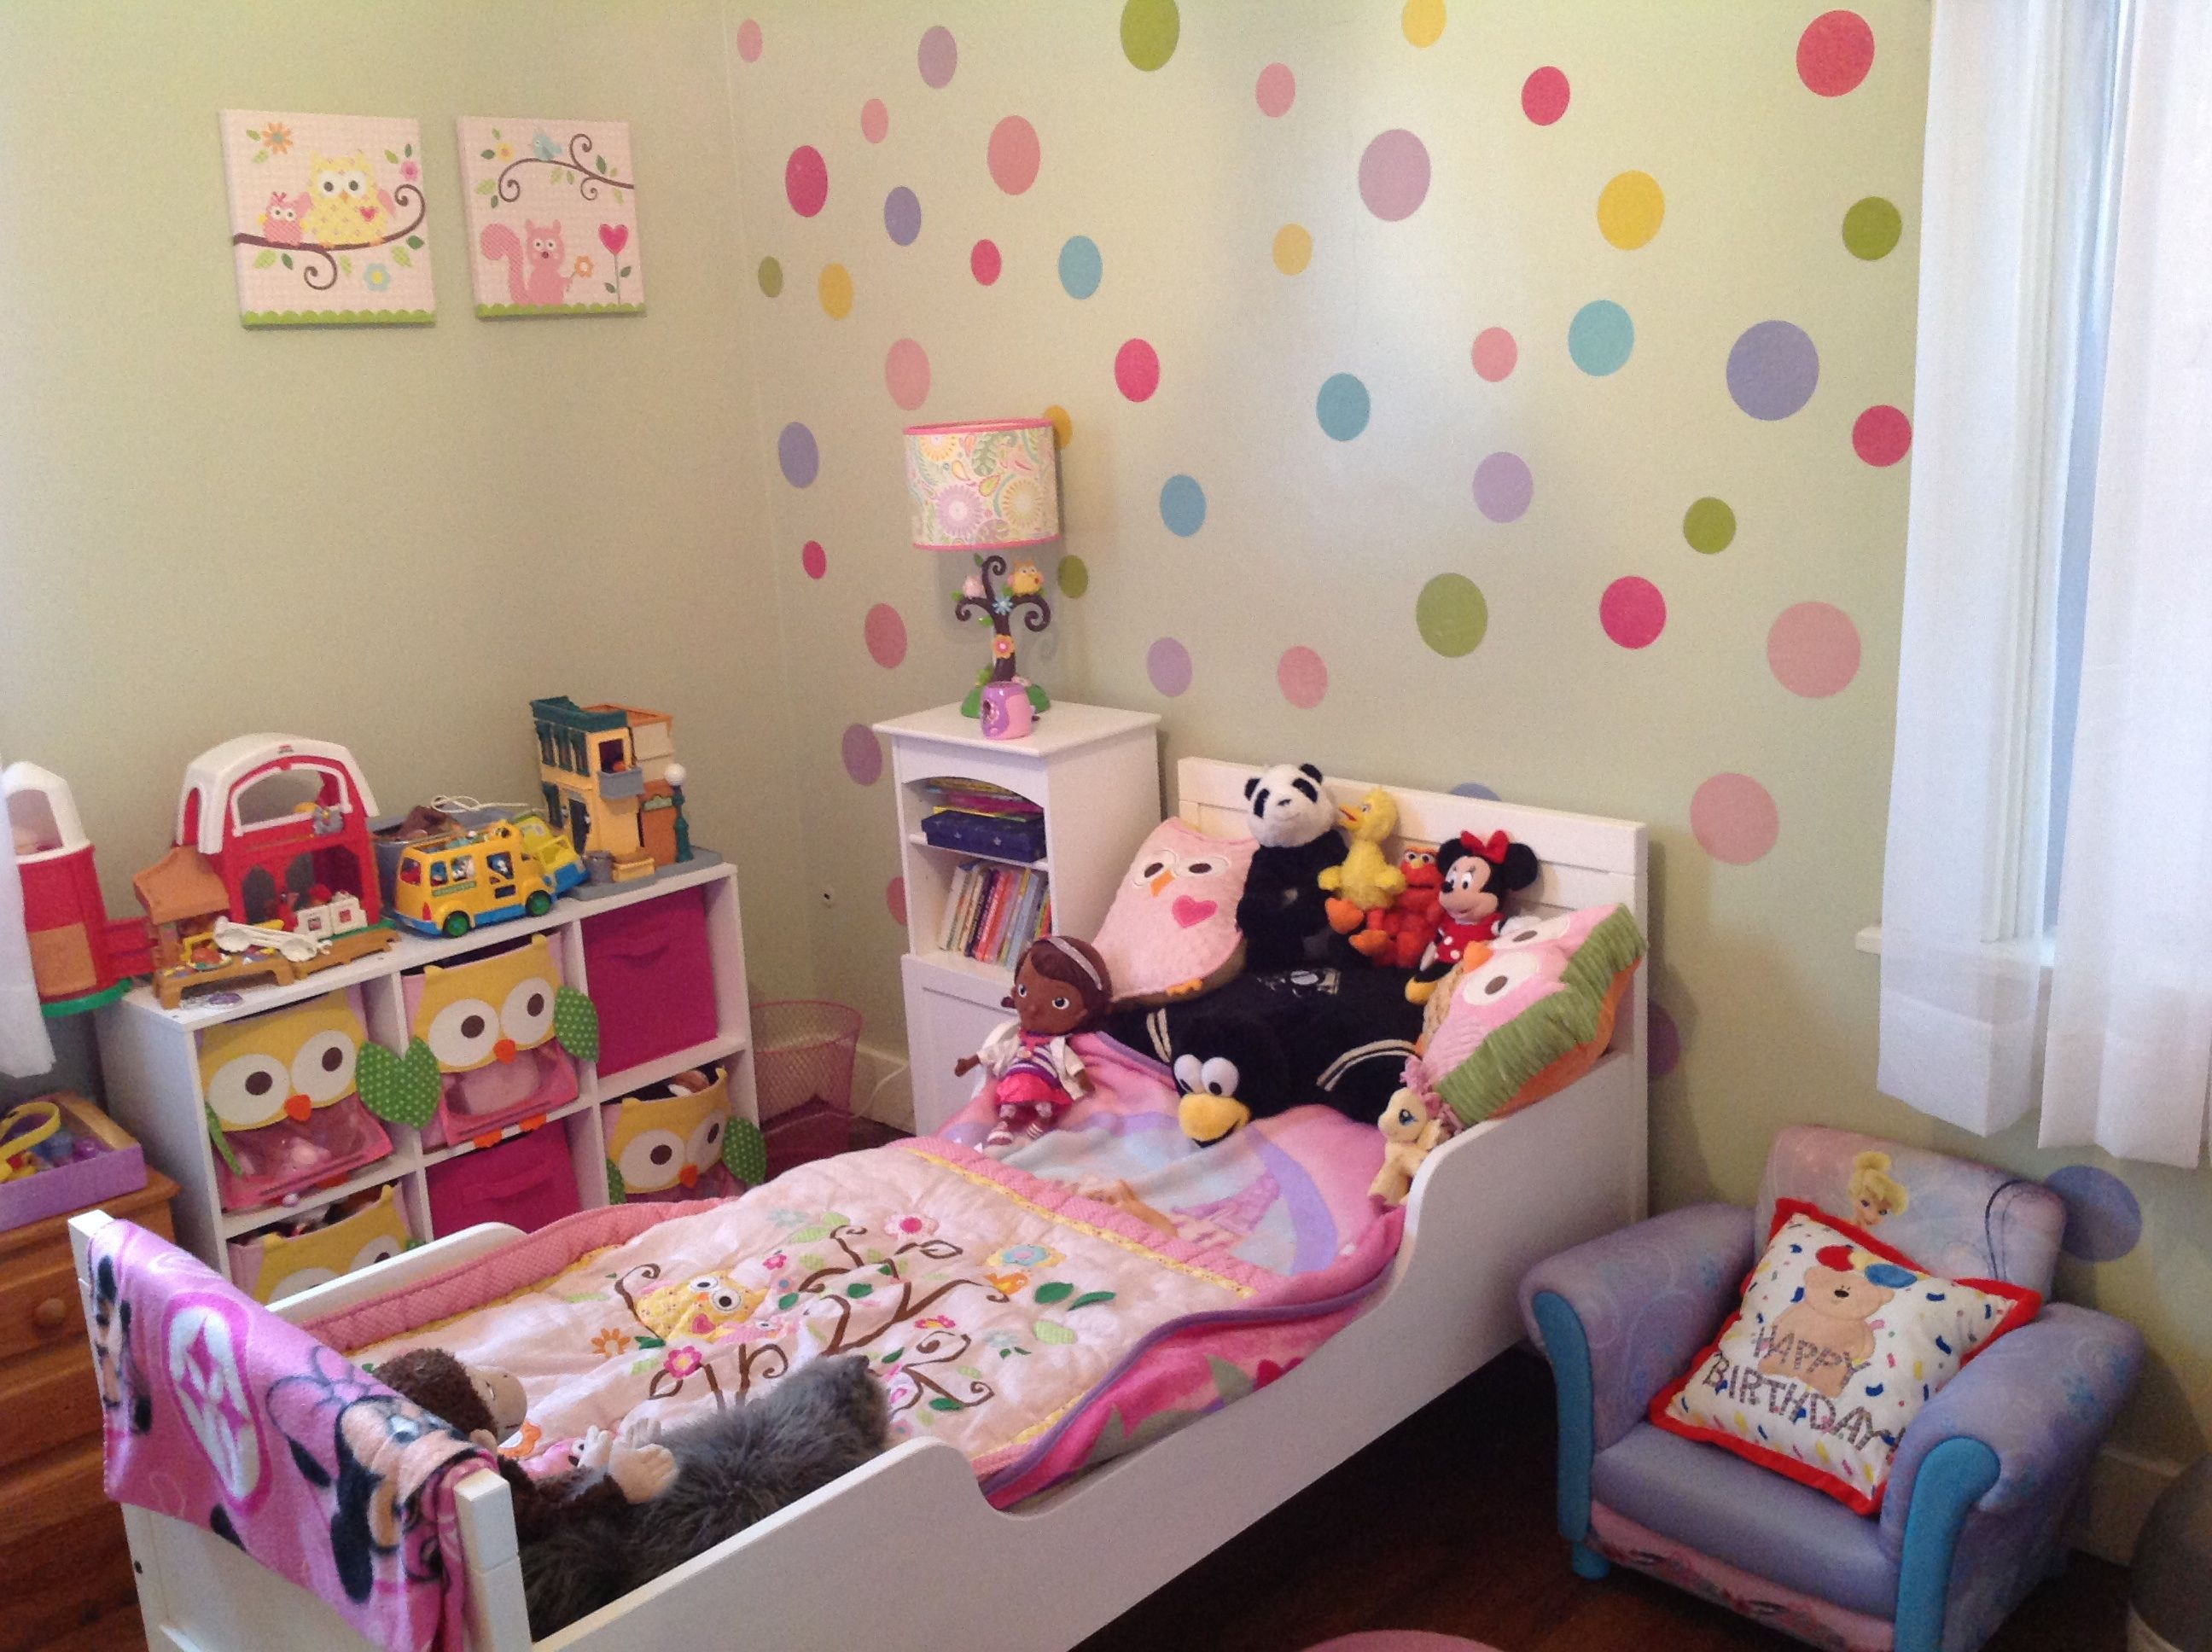 Sundvik extendable bed   Children's playrooms and bedrooms ...